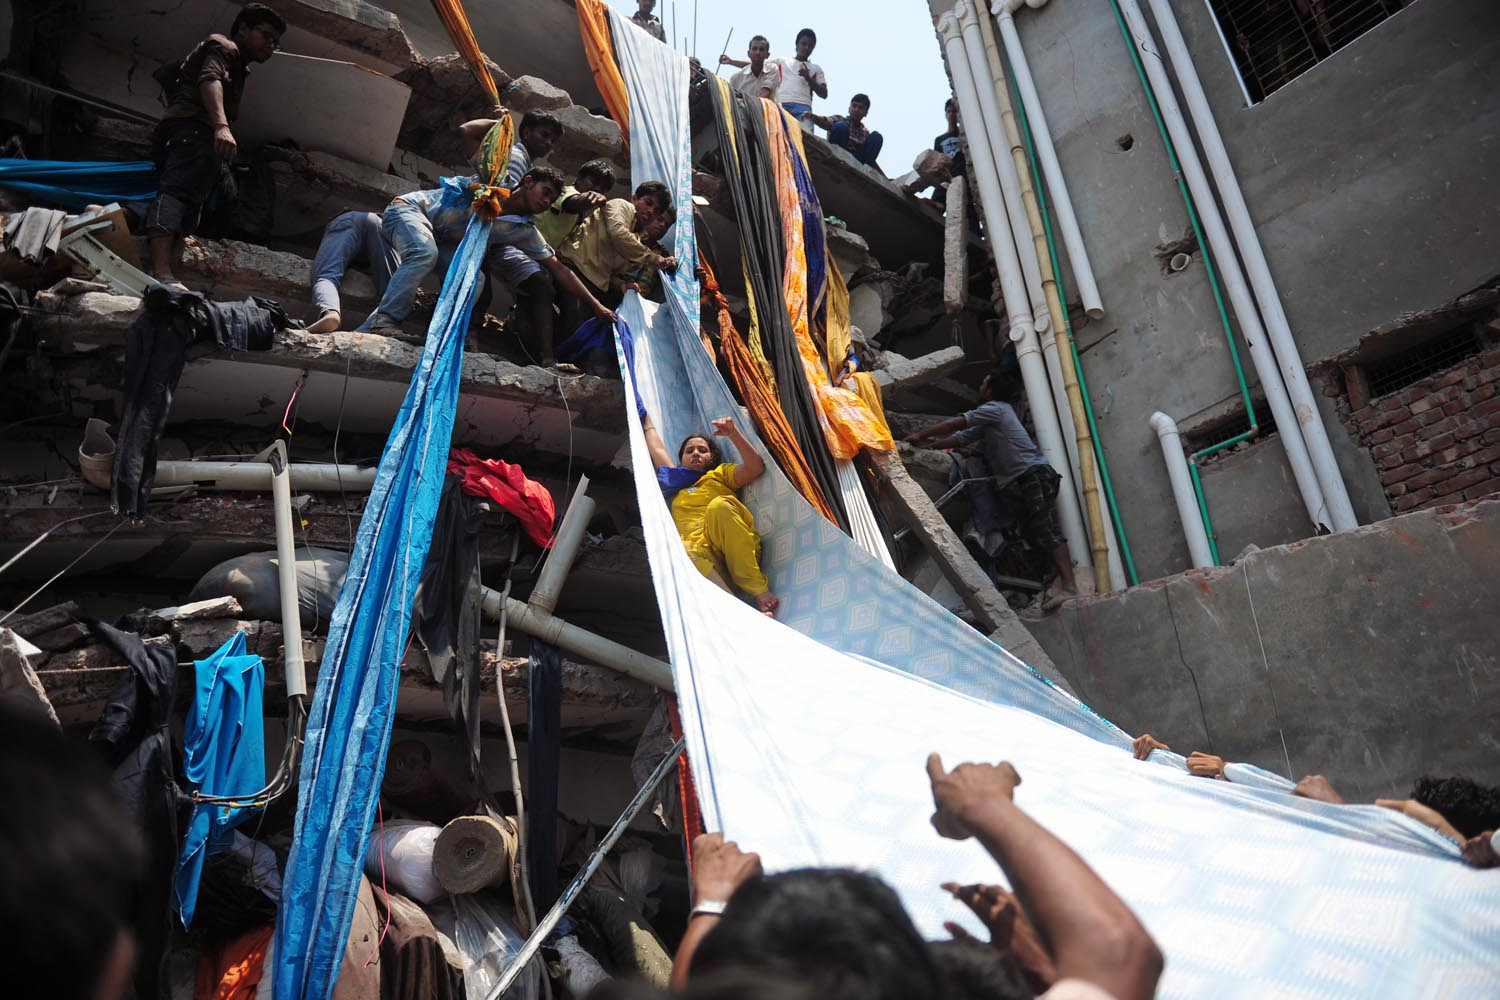 April 24, 2013. Bangladeshi garment workers help evacuate a survivor using lengths of textile as a slide to evacuate from the rubble after an eight-storey building collapsed in Savar, on the outskirts of Dhaka.